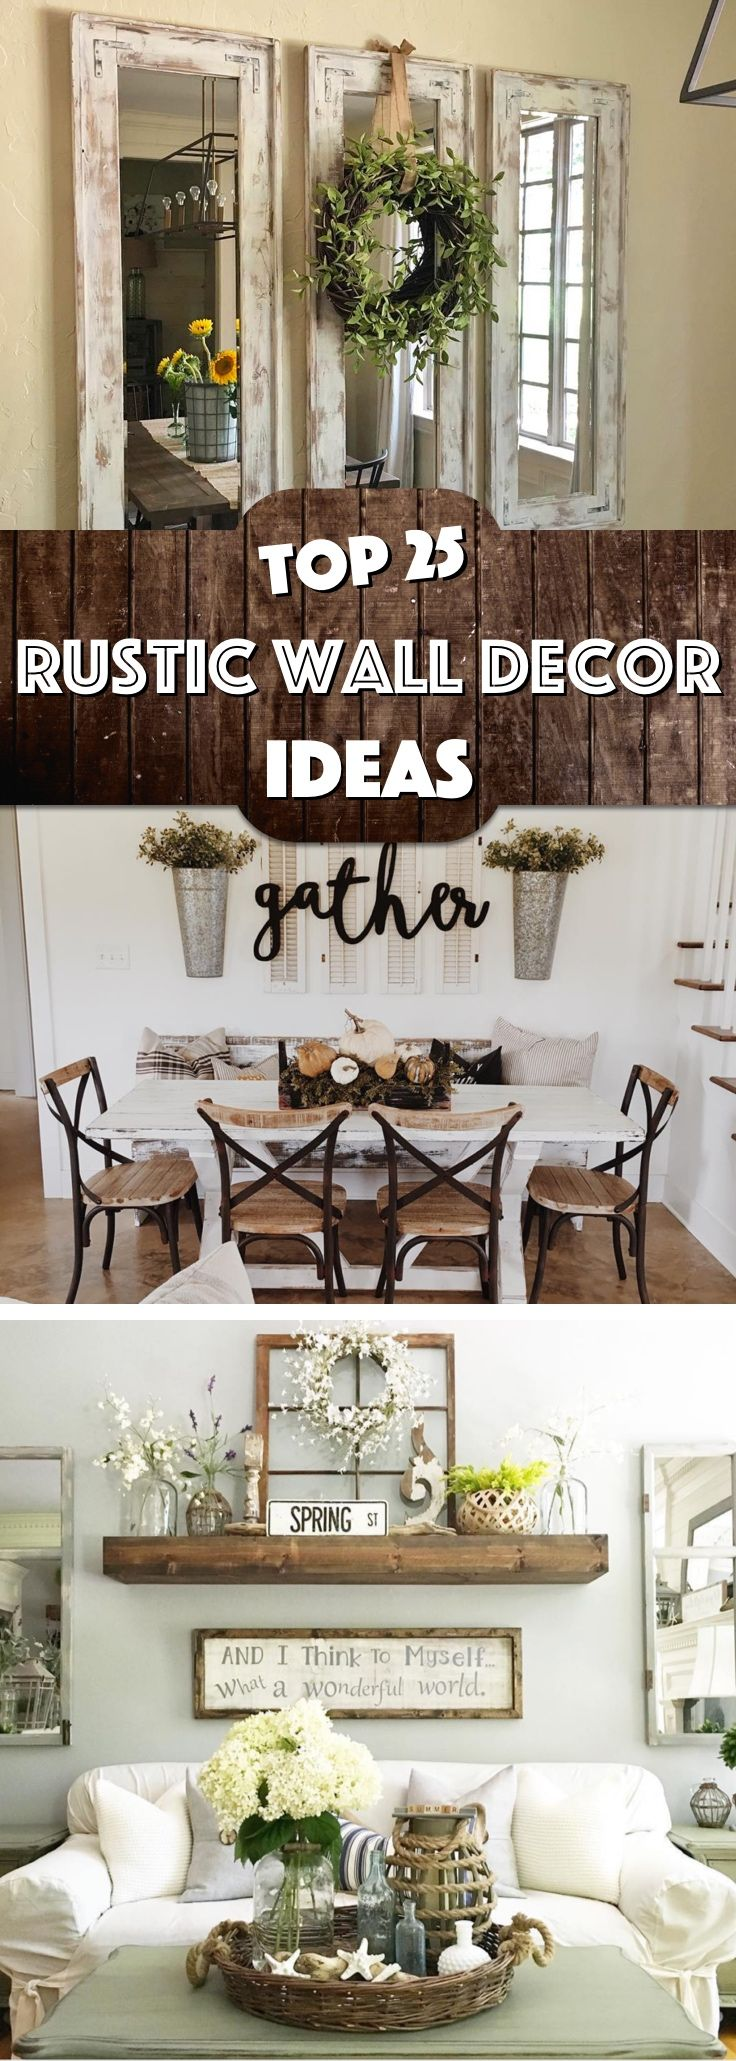 25 Must Try Rustic Wall Decor Ideas Featuring The Most Amazing Intended Imperfections Cute Diy Projects Easy Home Decor Farm House Living Room Home